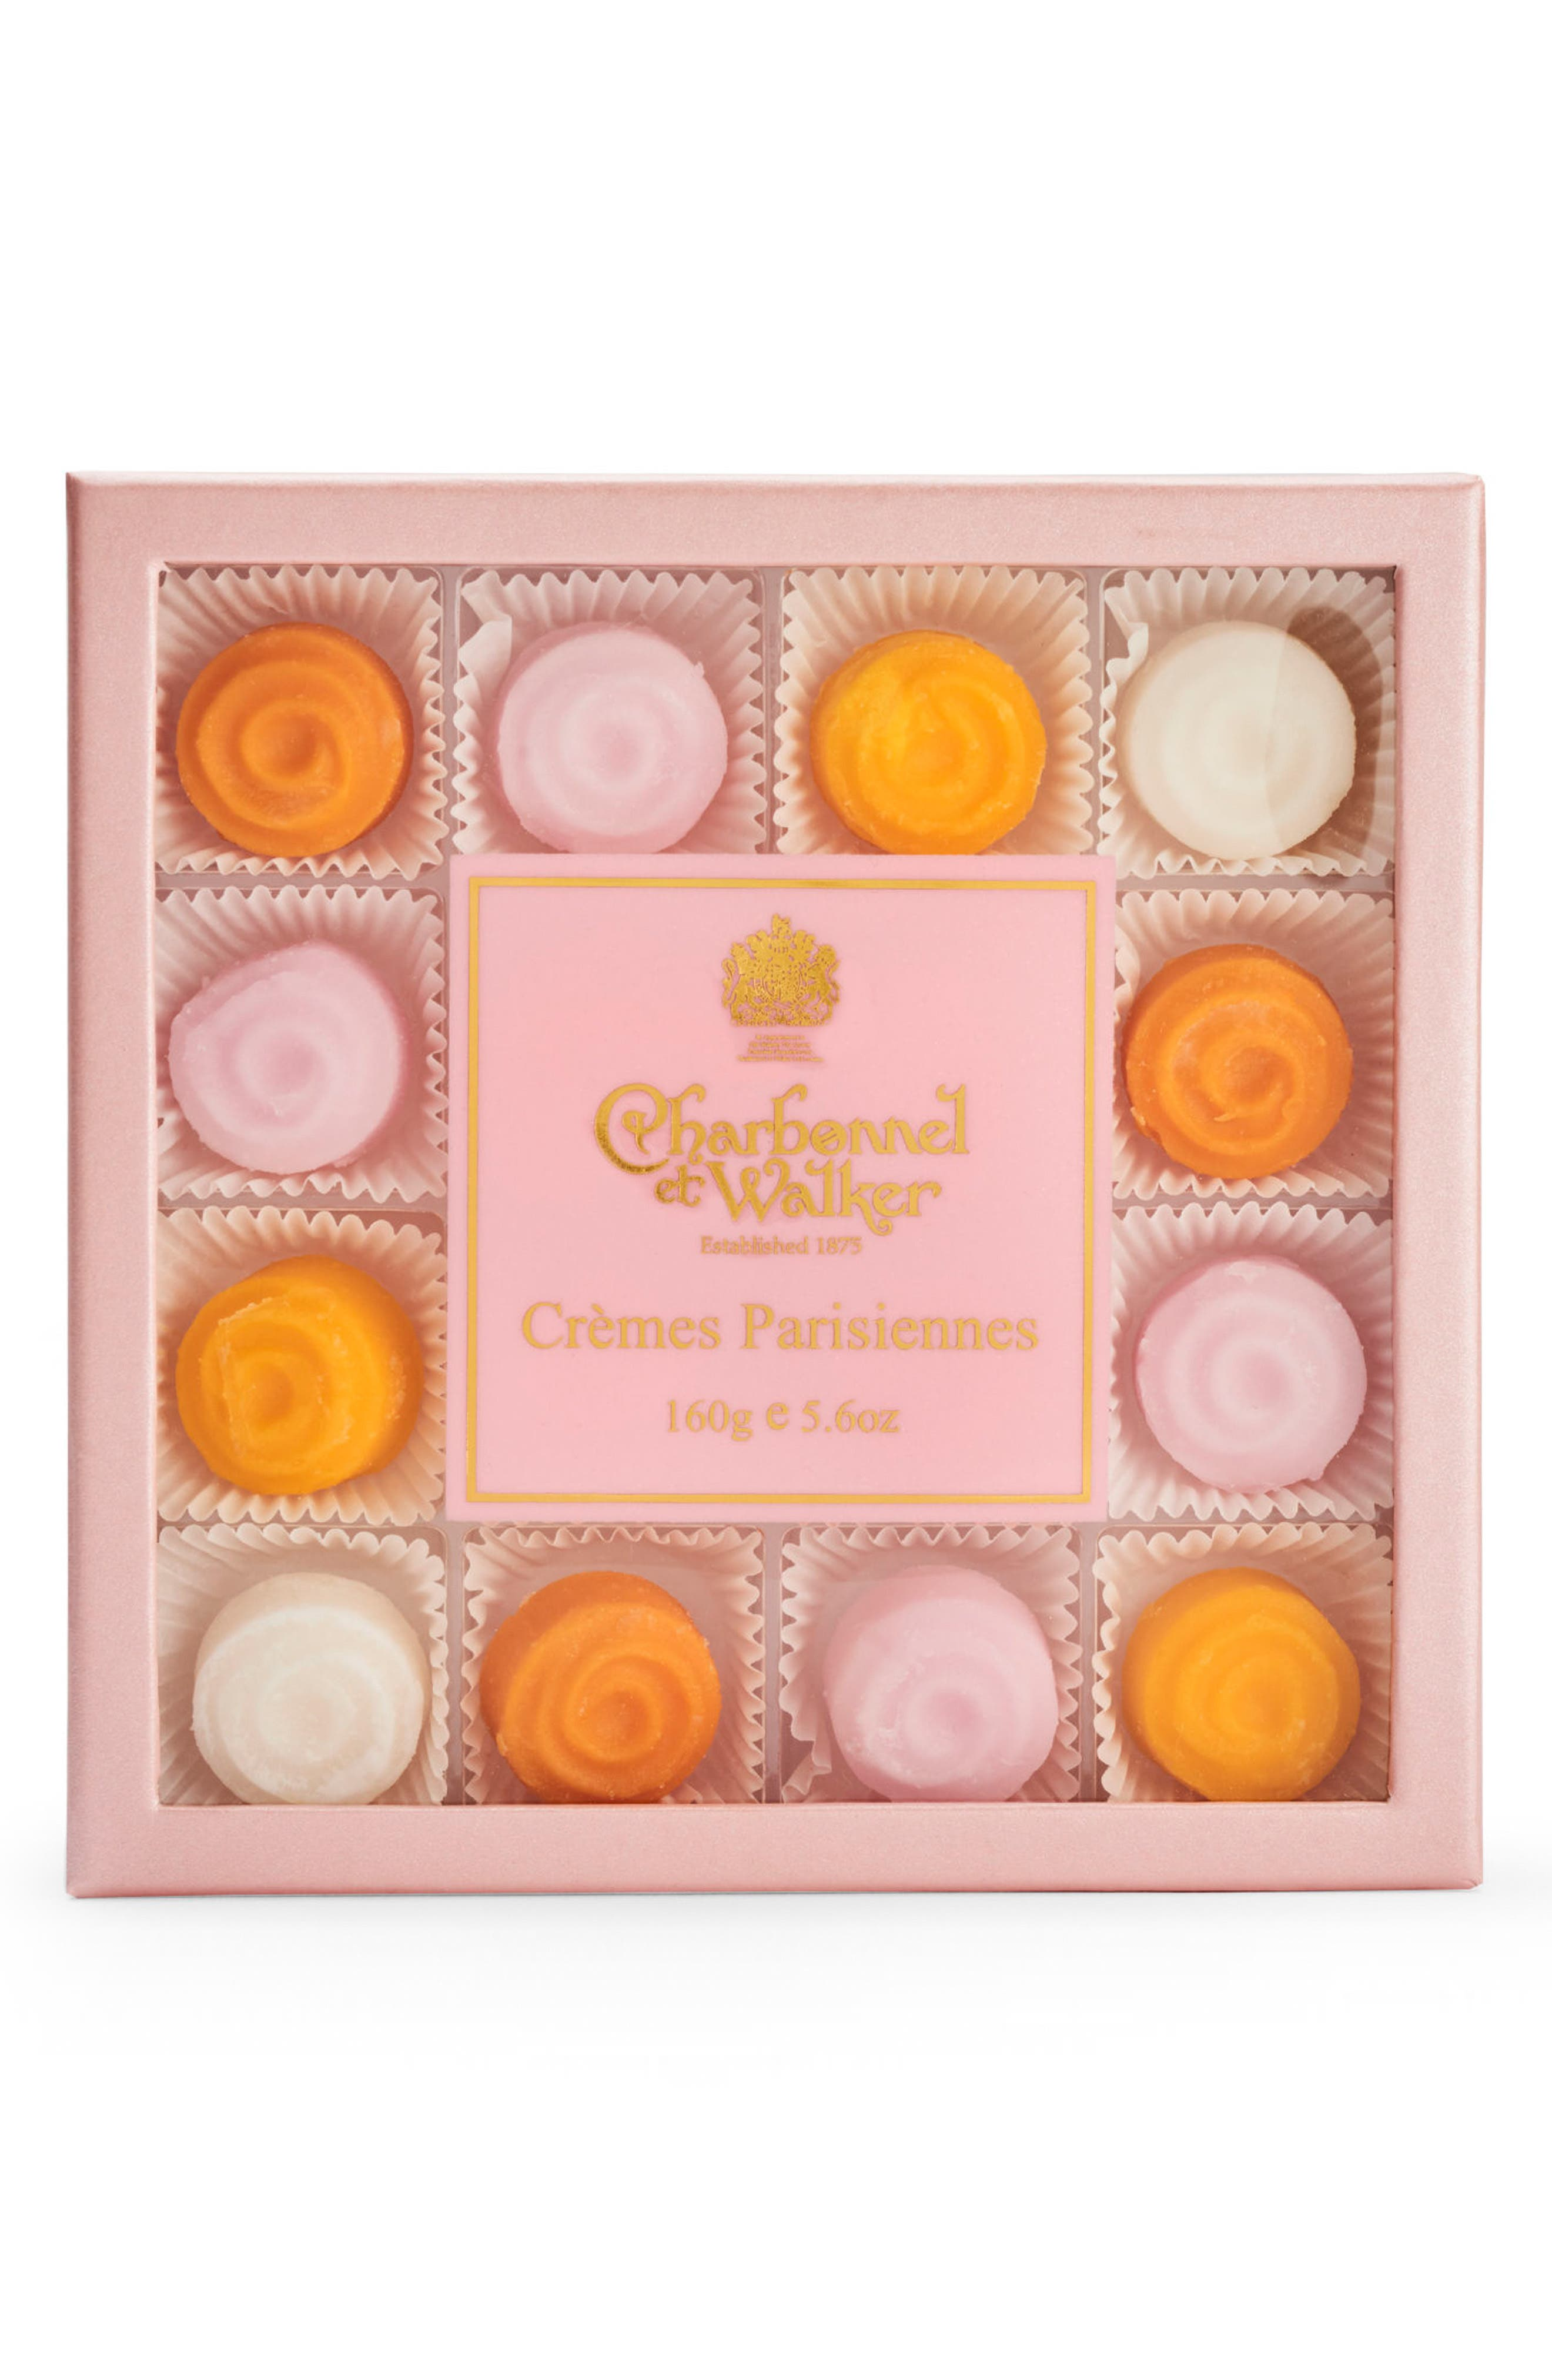 Cremes Parisiennes in Gift Box,                         Main,                         color,